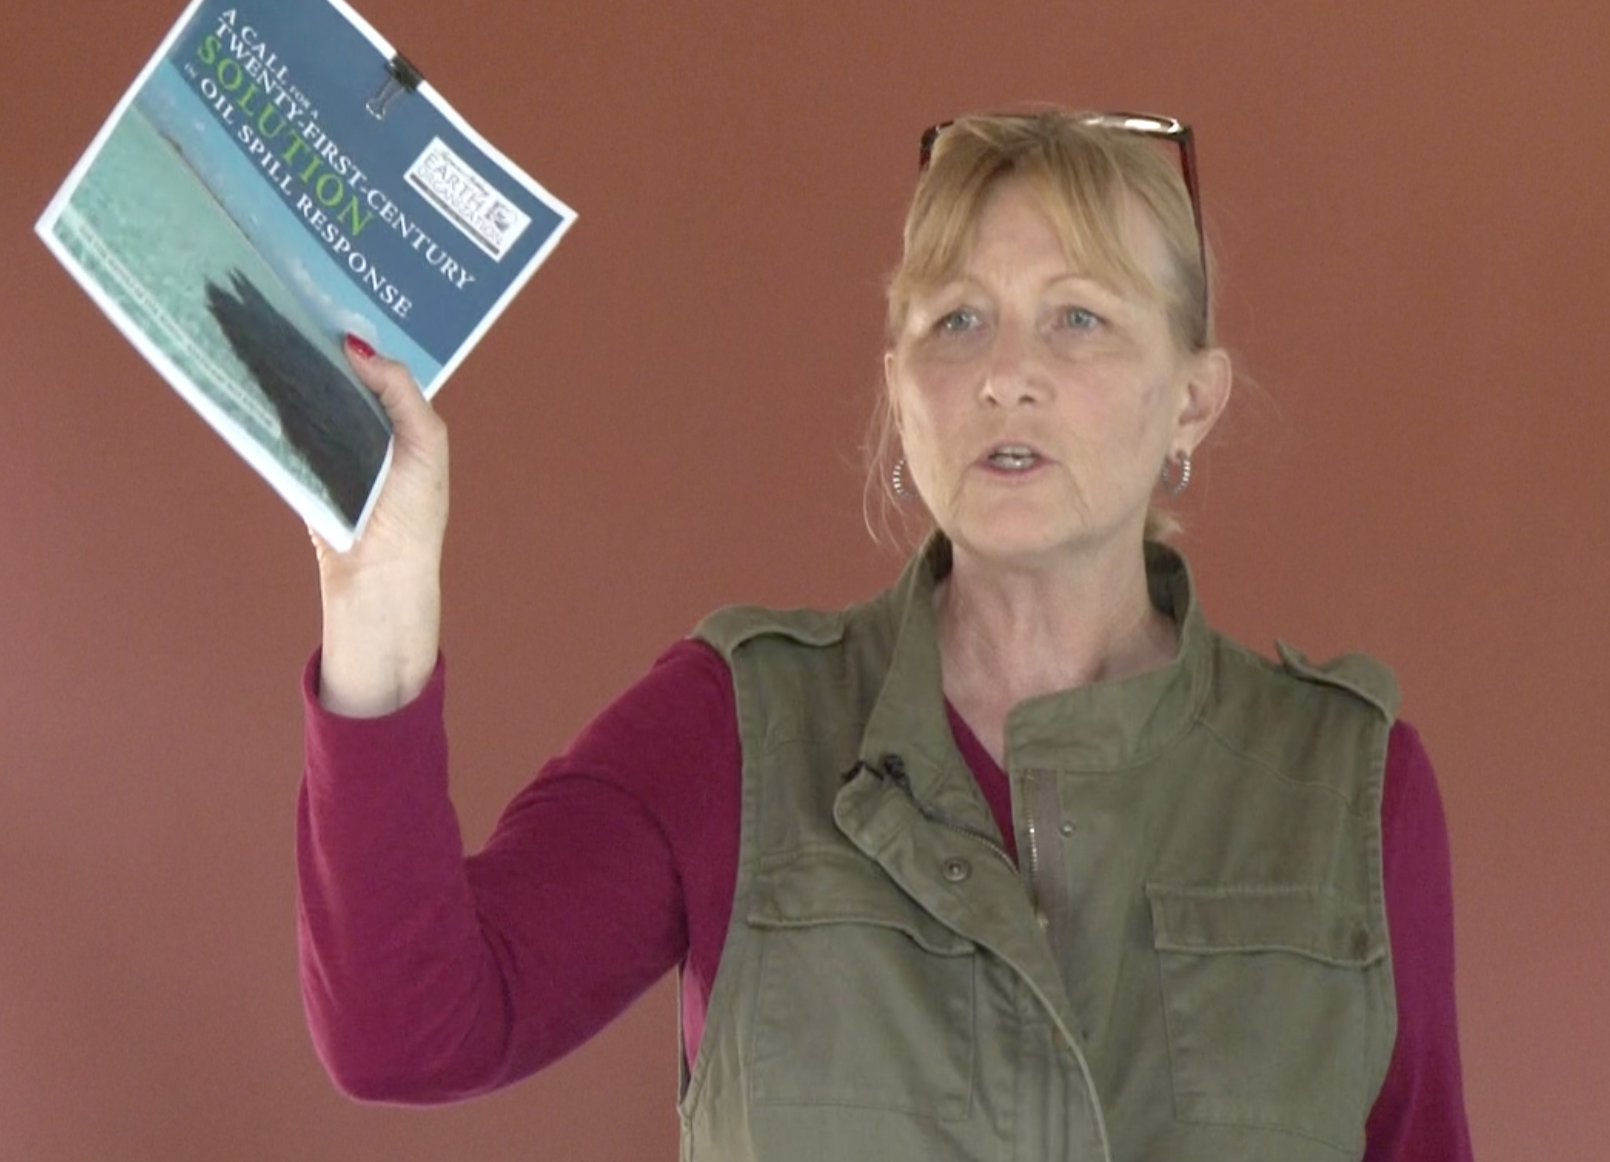 Education - Diane Wagenbrenner briefing re oil spill cleanup solutions